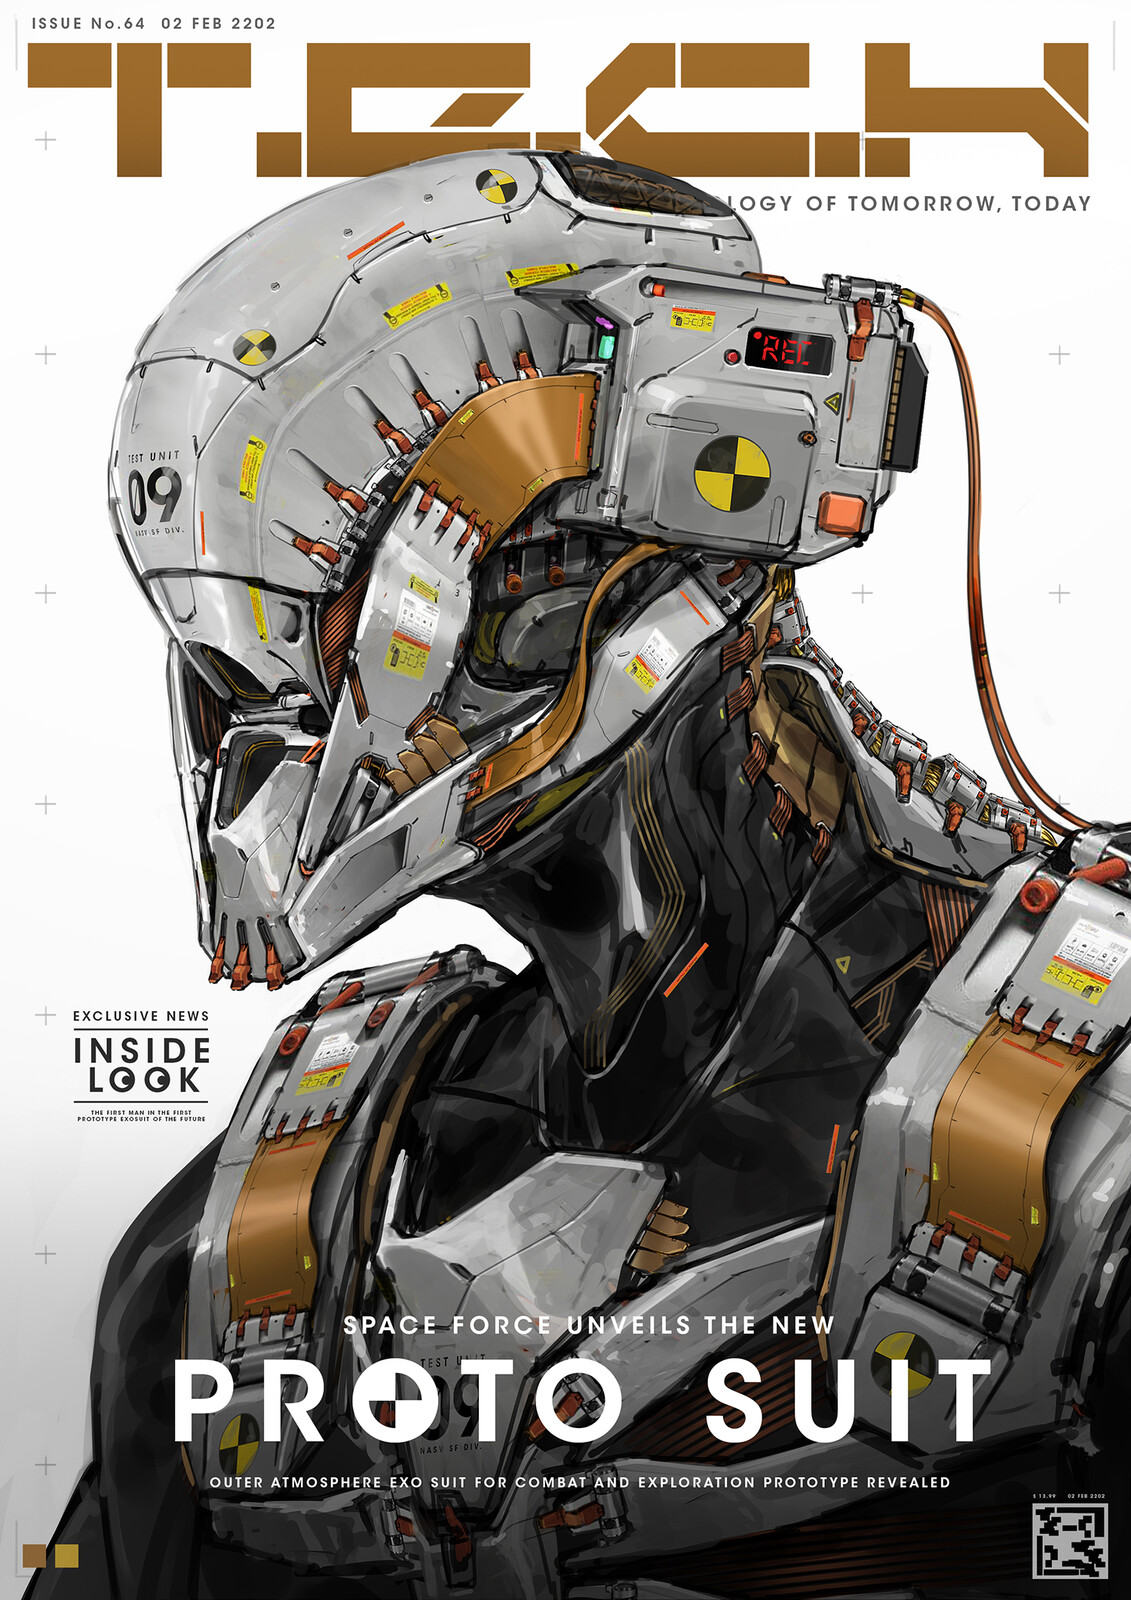 Protosuit  - Single Photo Photobash